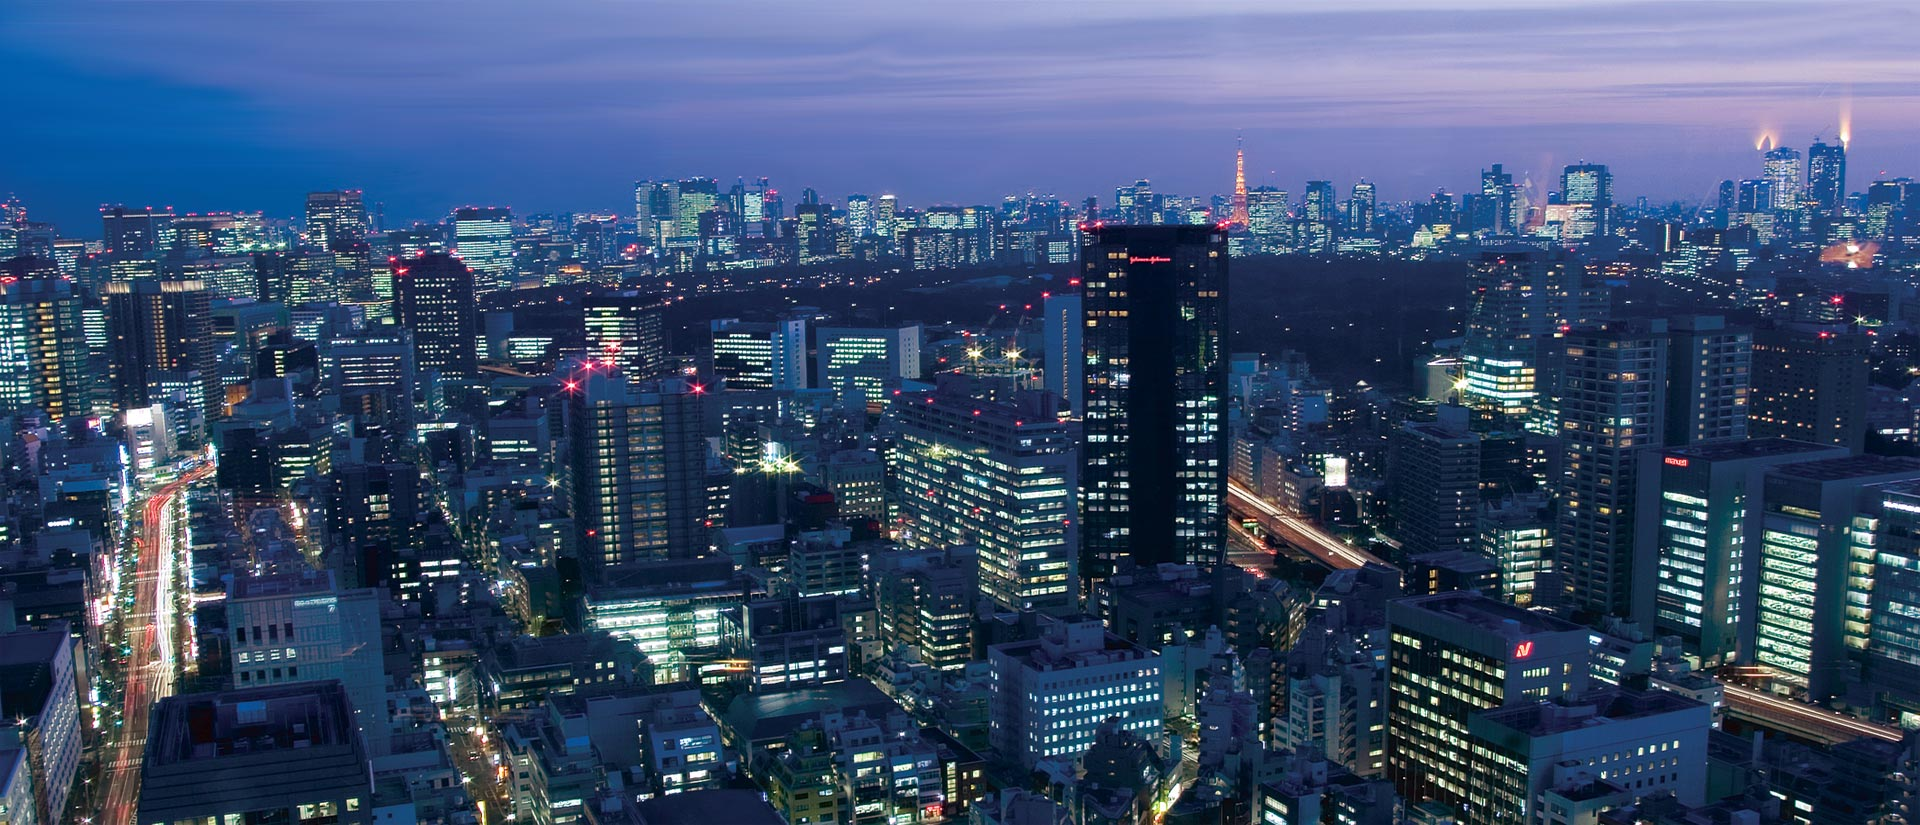 Japan travel specialist - Tokyo night view